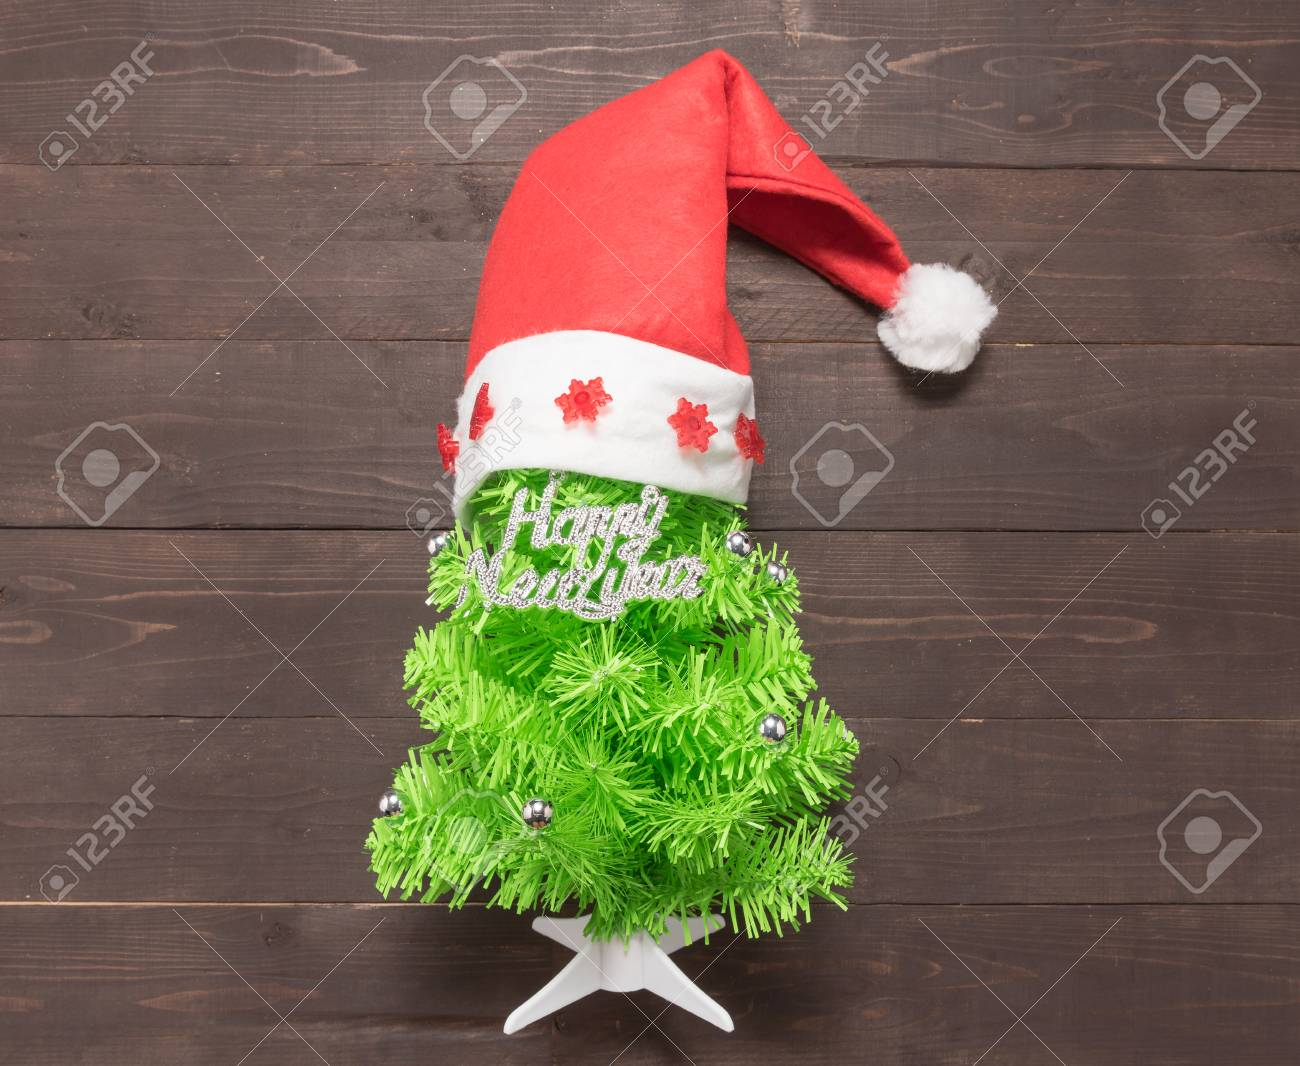 Christmas Tree With Happy New Year Massage And Red Hat Are On ...